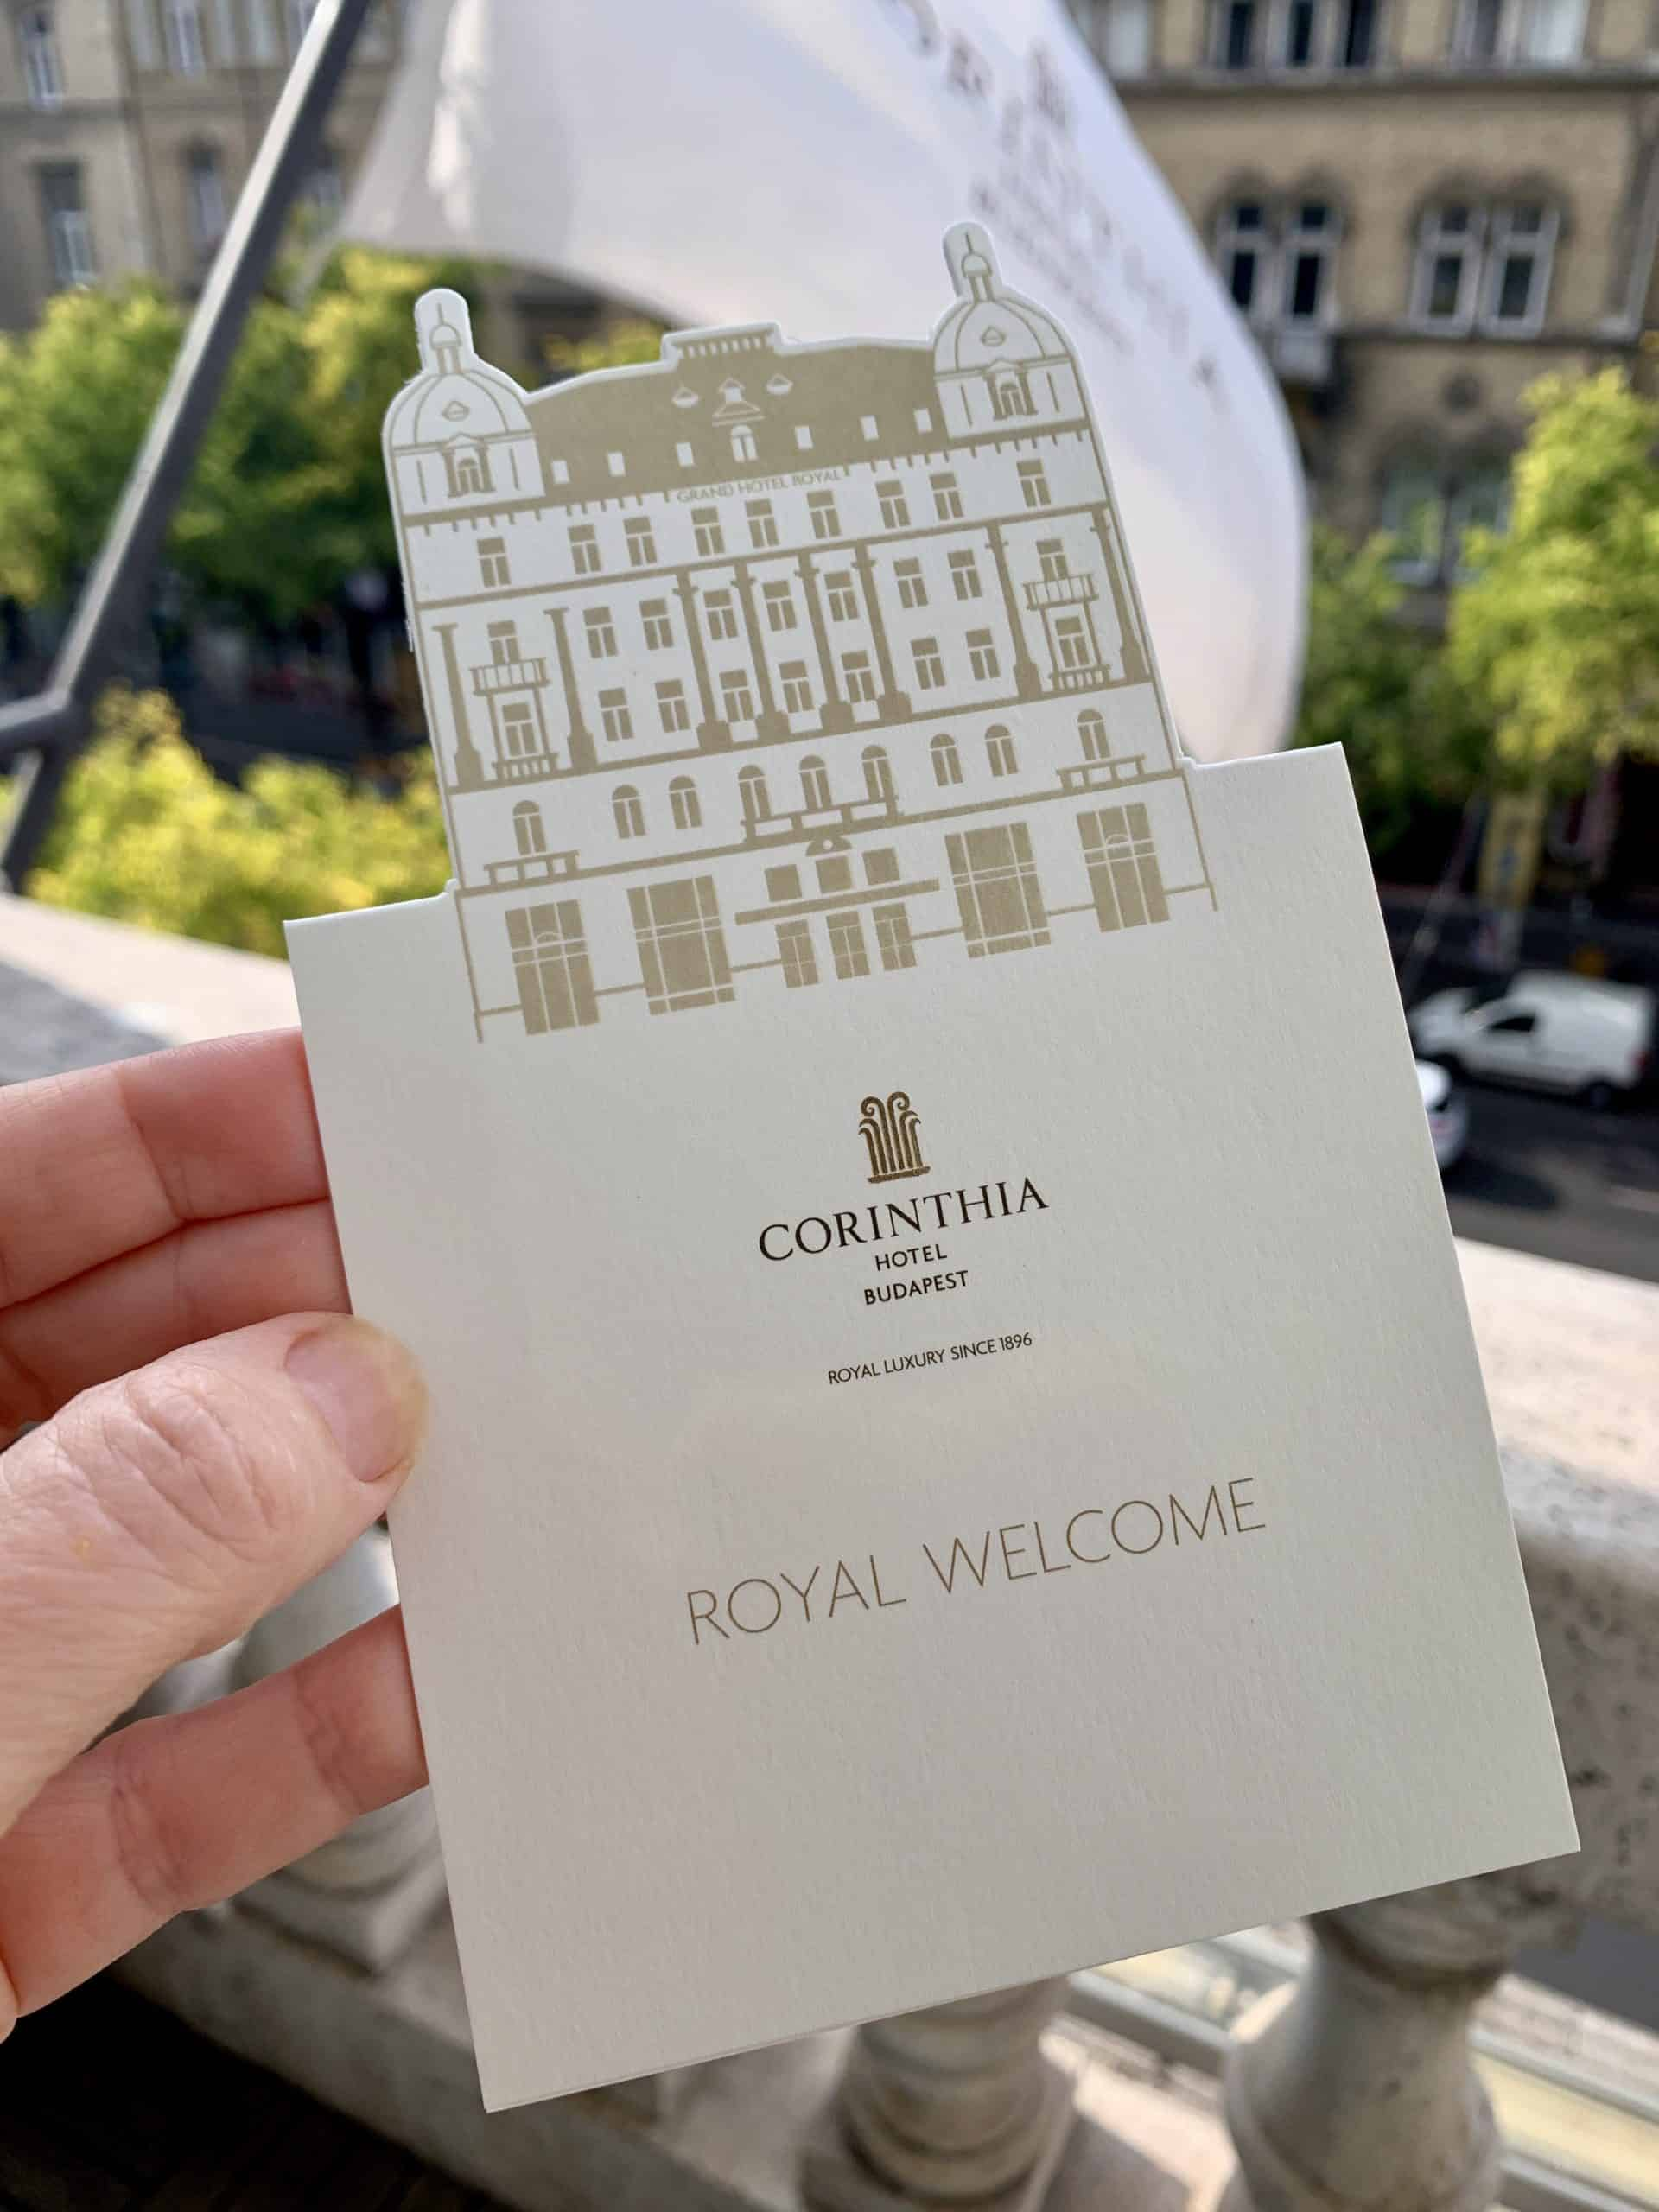 Royal welcome at the Corinthia Hotel Budapest